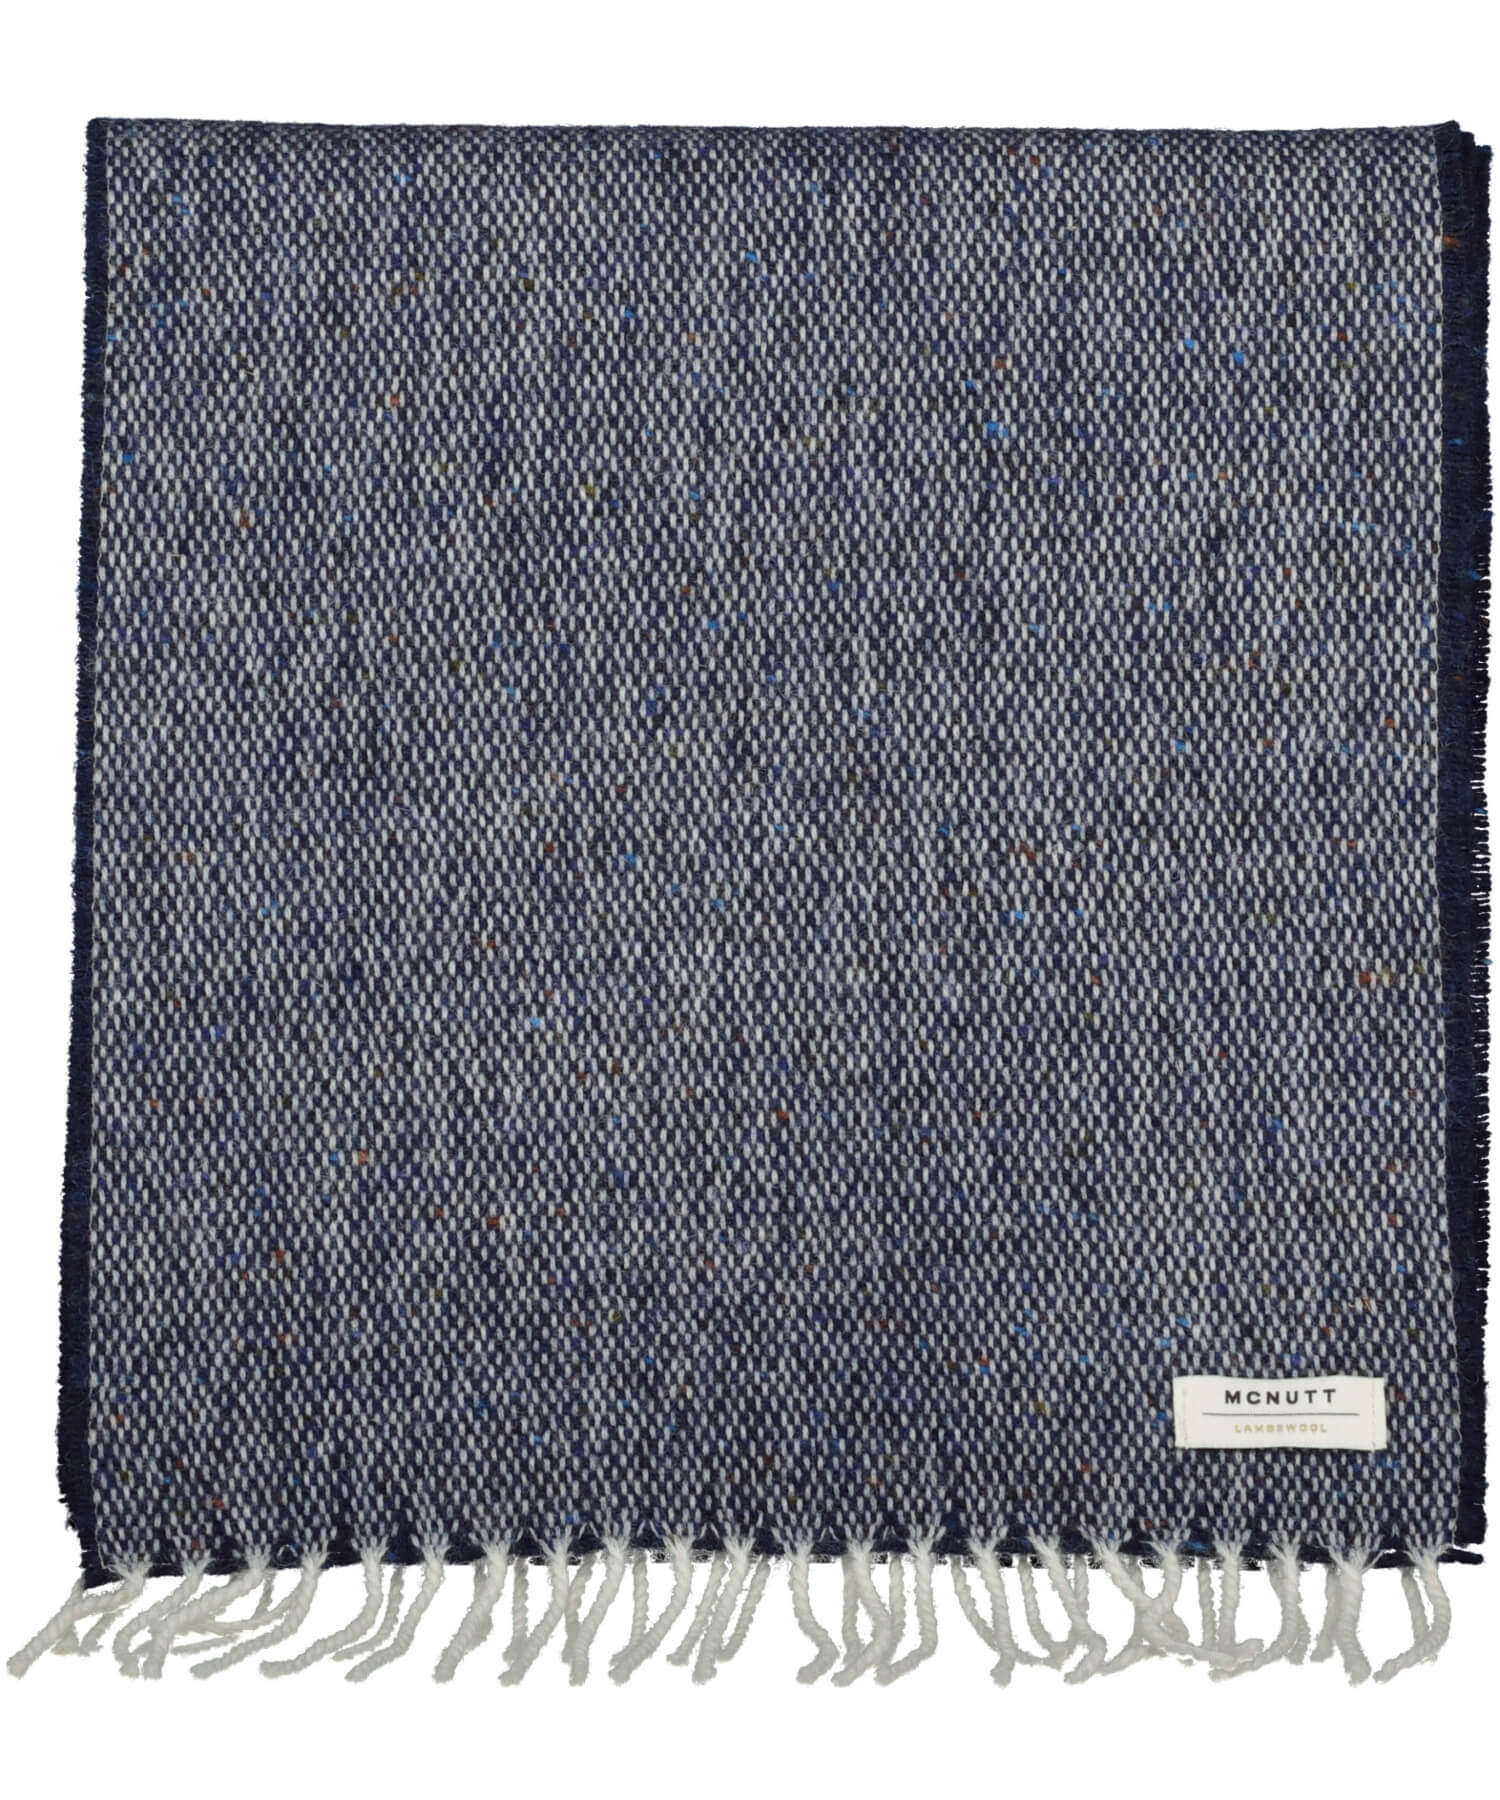 Donegal Tweed Scarf - Navy - [McNutts] - Unisex Scarves - Irish Gifts